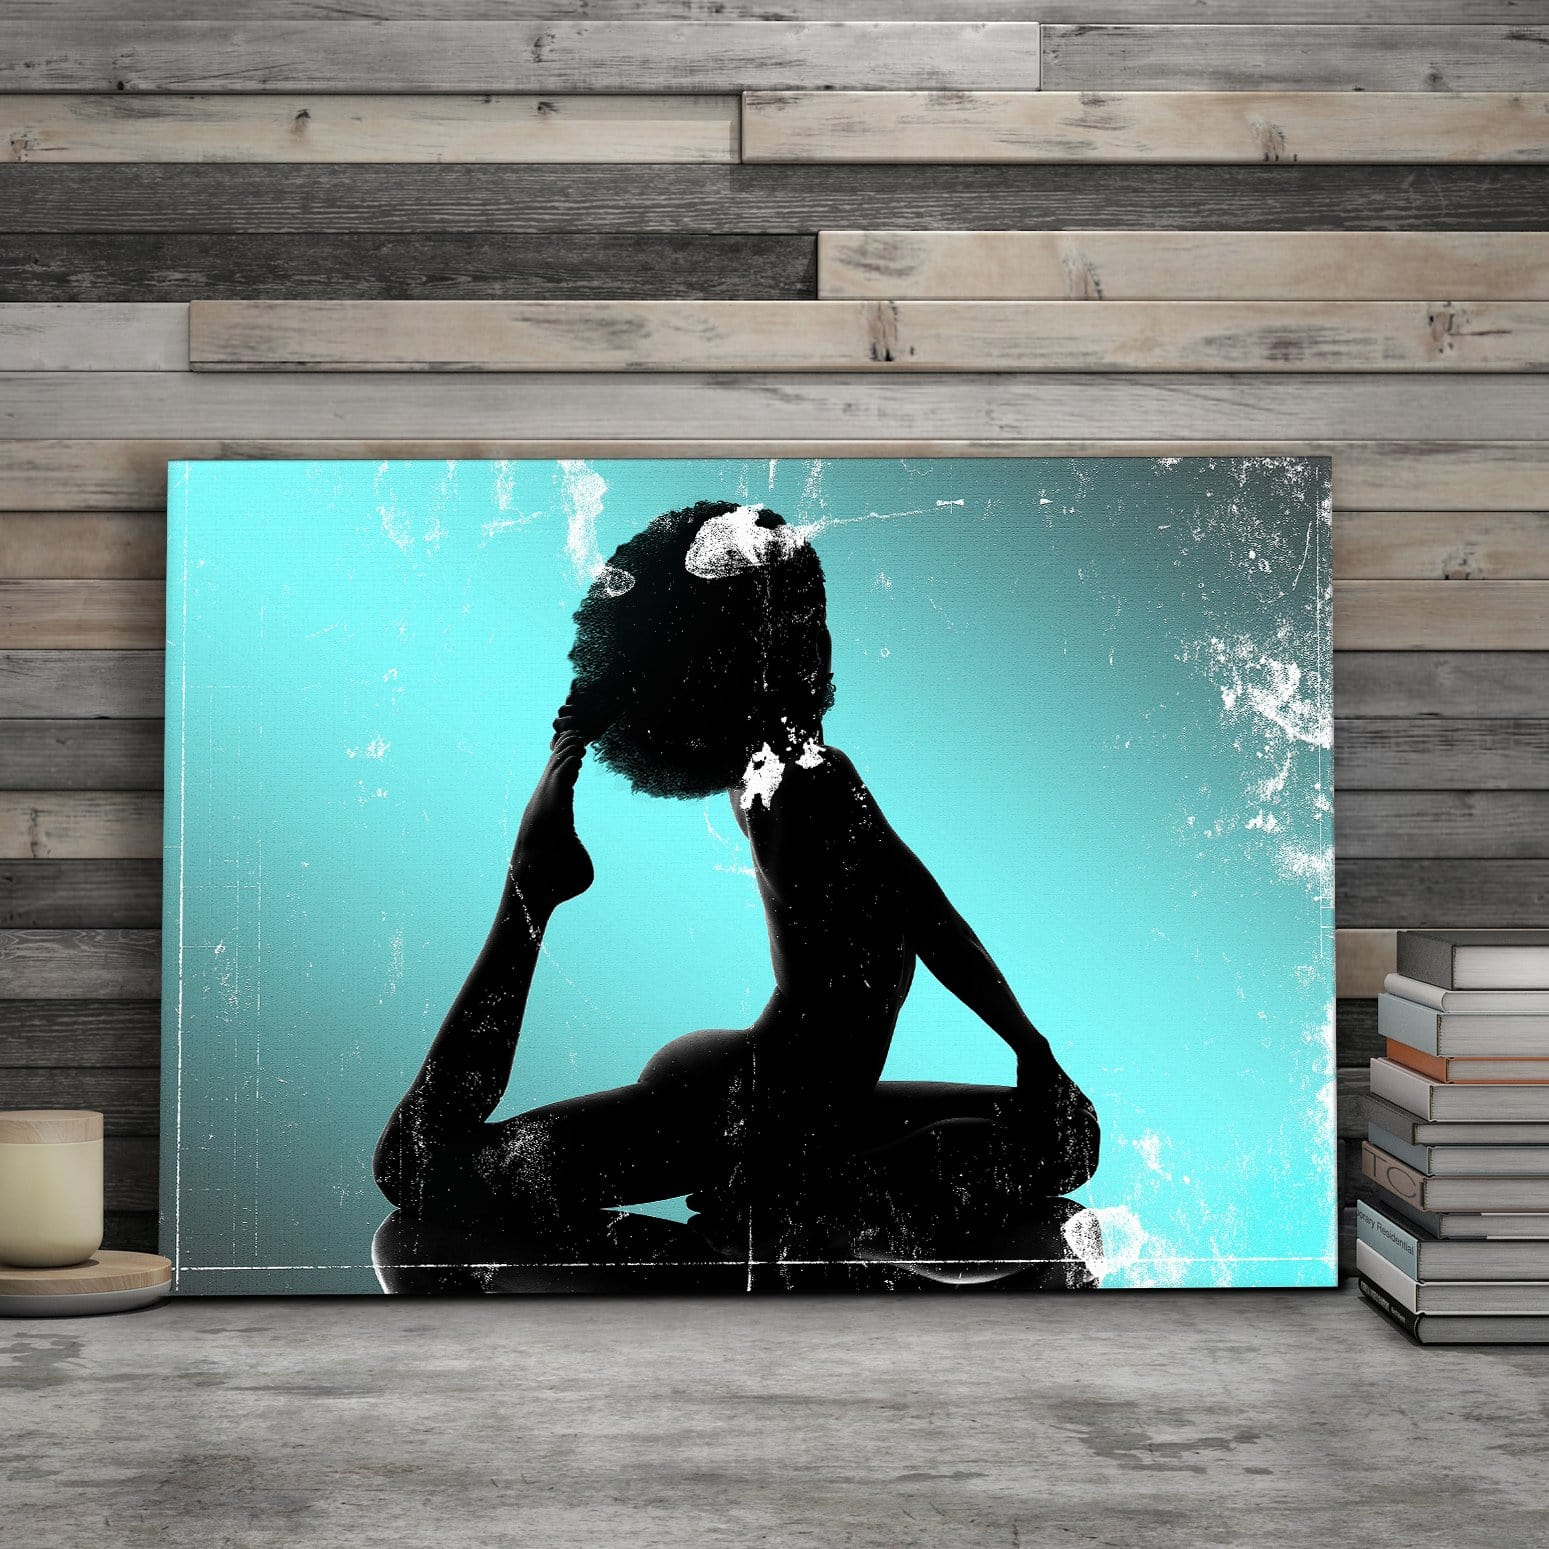 Black Beauty Afro Silhouette - Framed Canvas Painting Wall Art Office Decor, large modern pop artwork for home or office, Entrepreneur Inspirational and motivational Quotes on Canvas great for man cave or home. Perfect for Artwork Addicts. Made in USA, FREE Shipping.